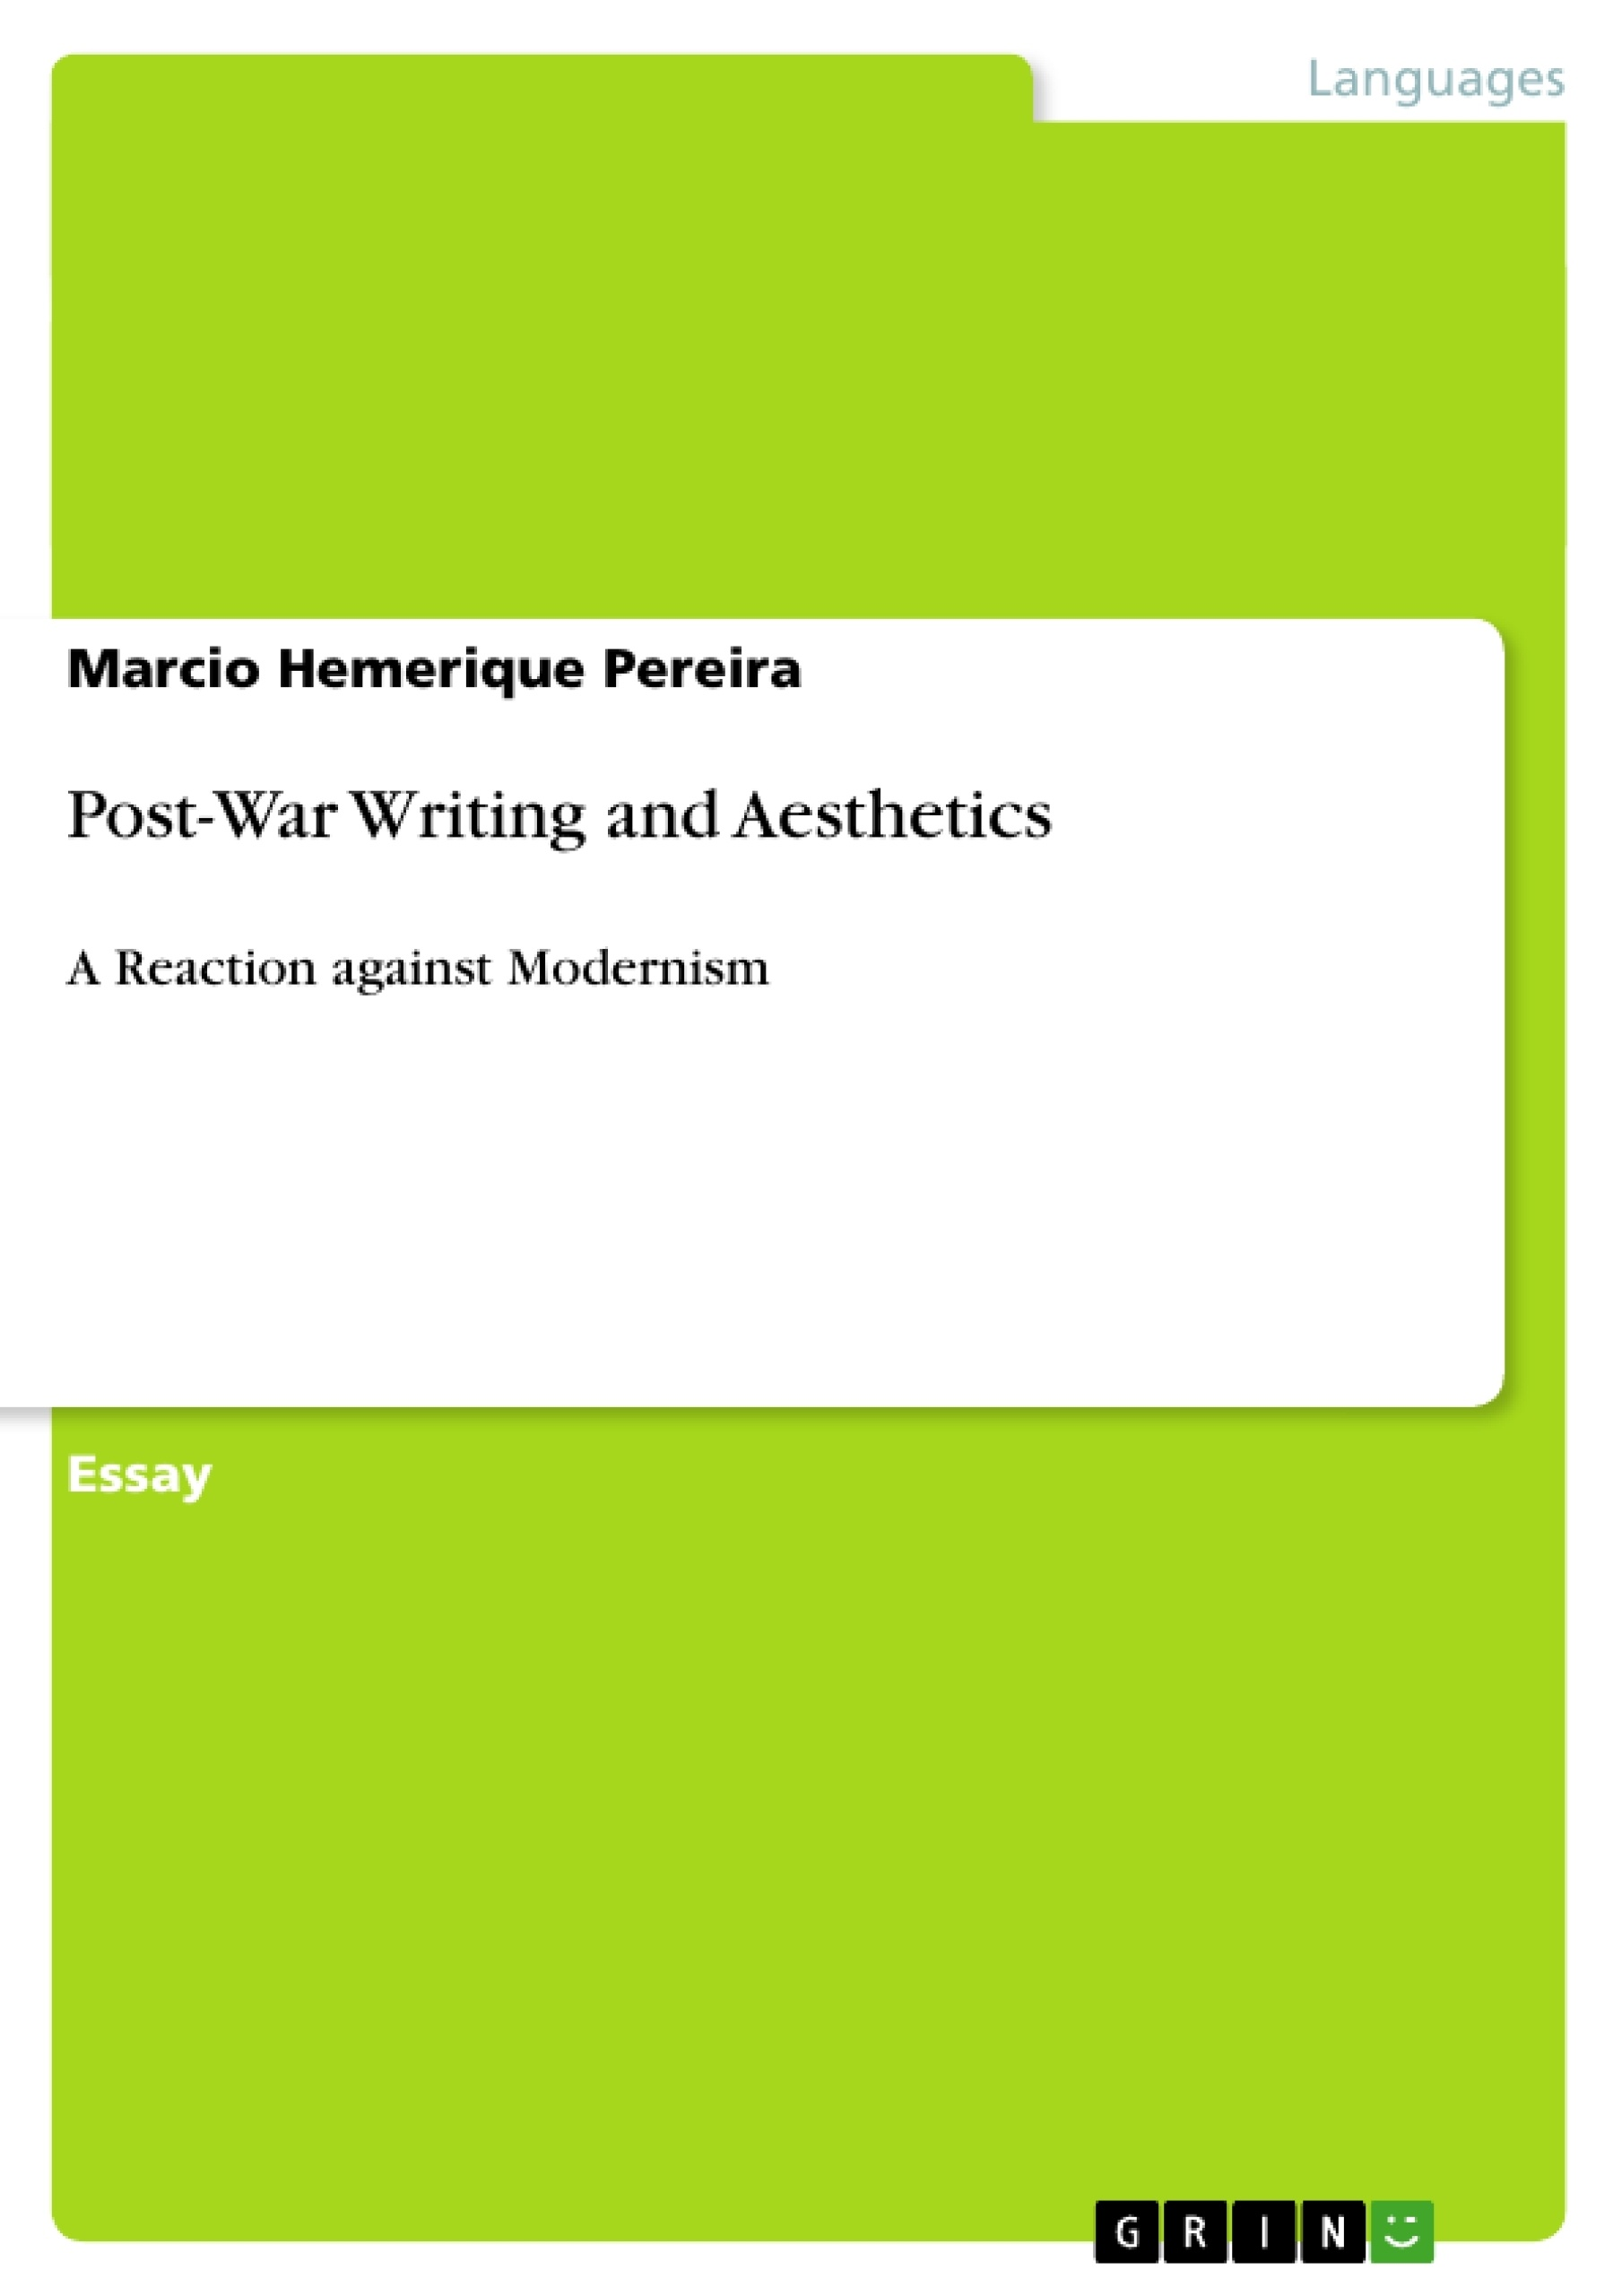 Title: Post-War Writing and Aesthetics